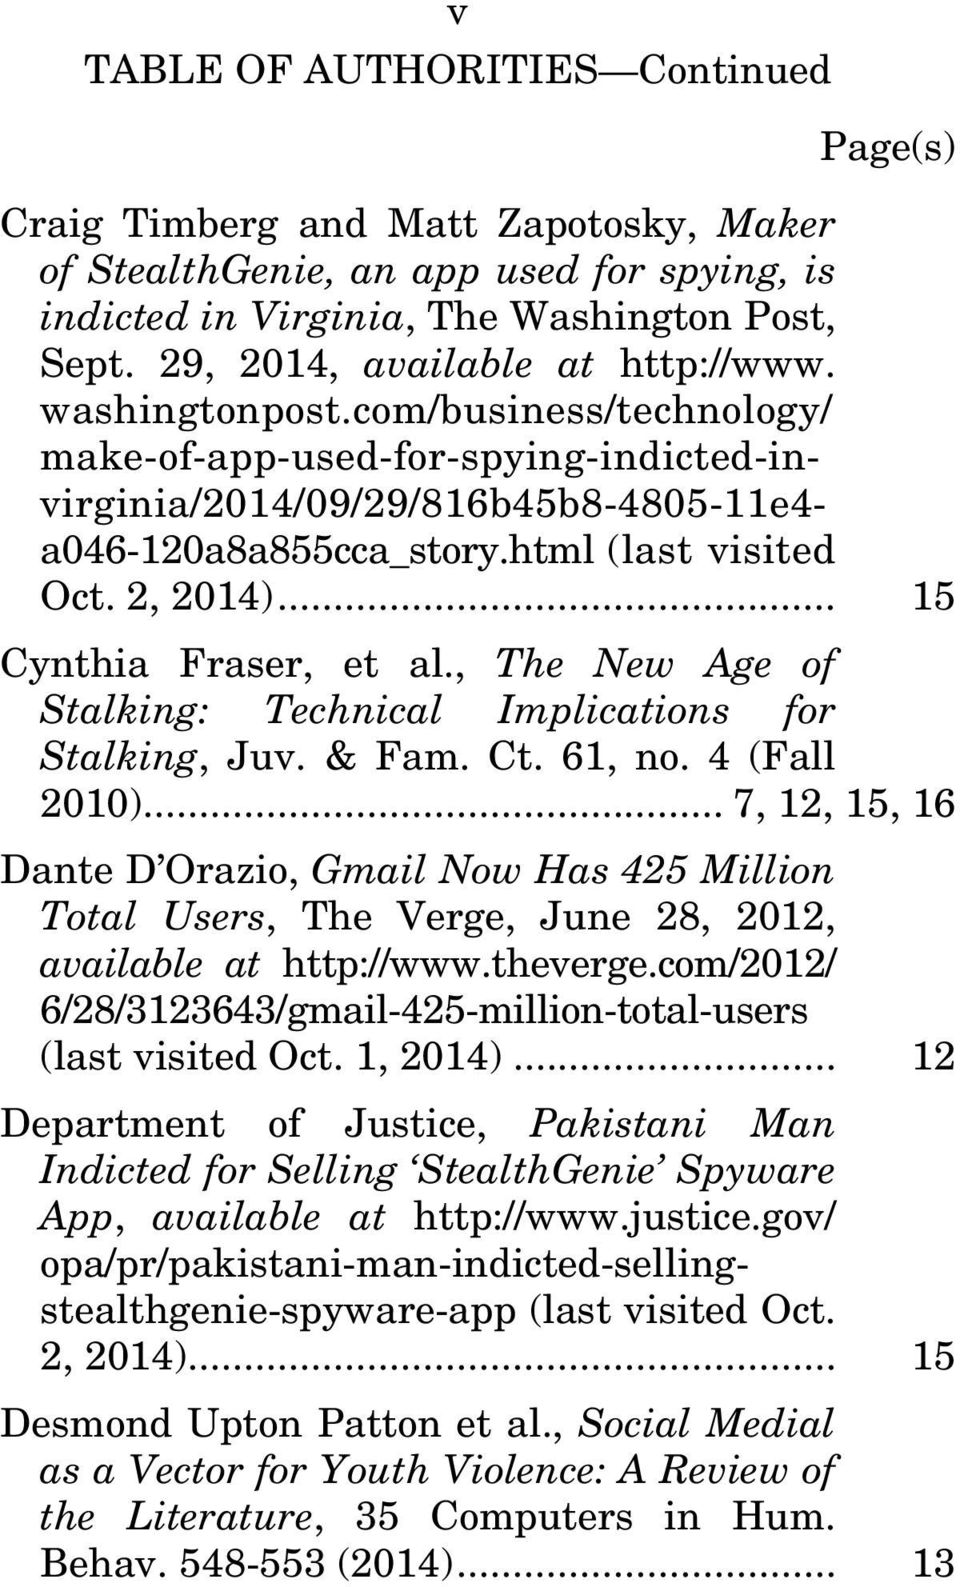 html (last visited Oct. 2, 2014)... 15 Cynthia Fraser, et al., The New Age of Stalking: Technical Implications for Stalking, Juv. & Fam. Ct. 61, no. 4 (Fall 2010).